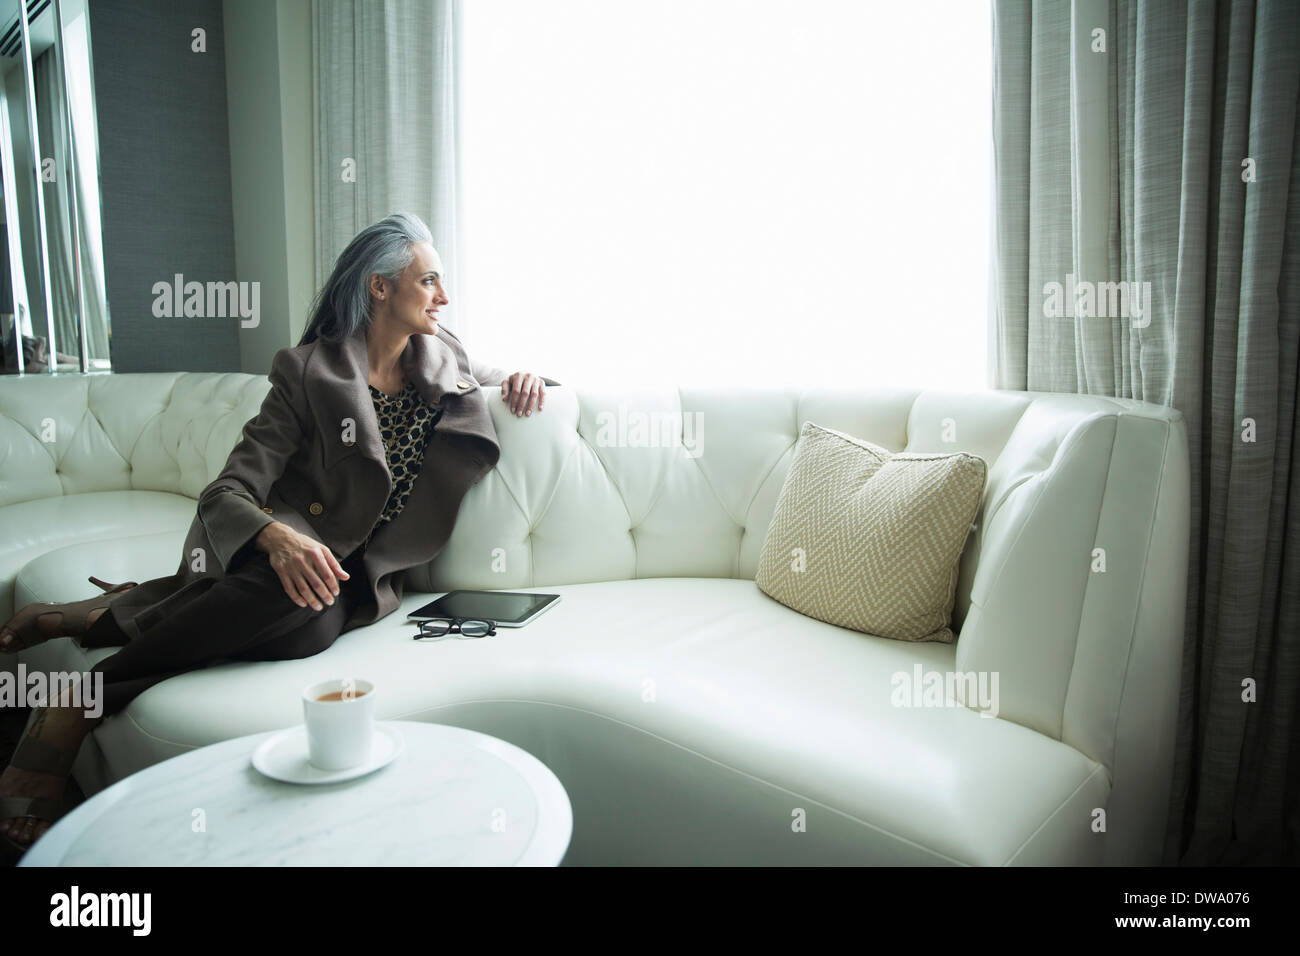 Portrait of mature woman reclining on white luxury sofa - Stock Image